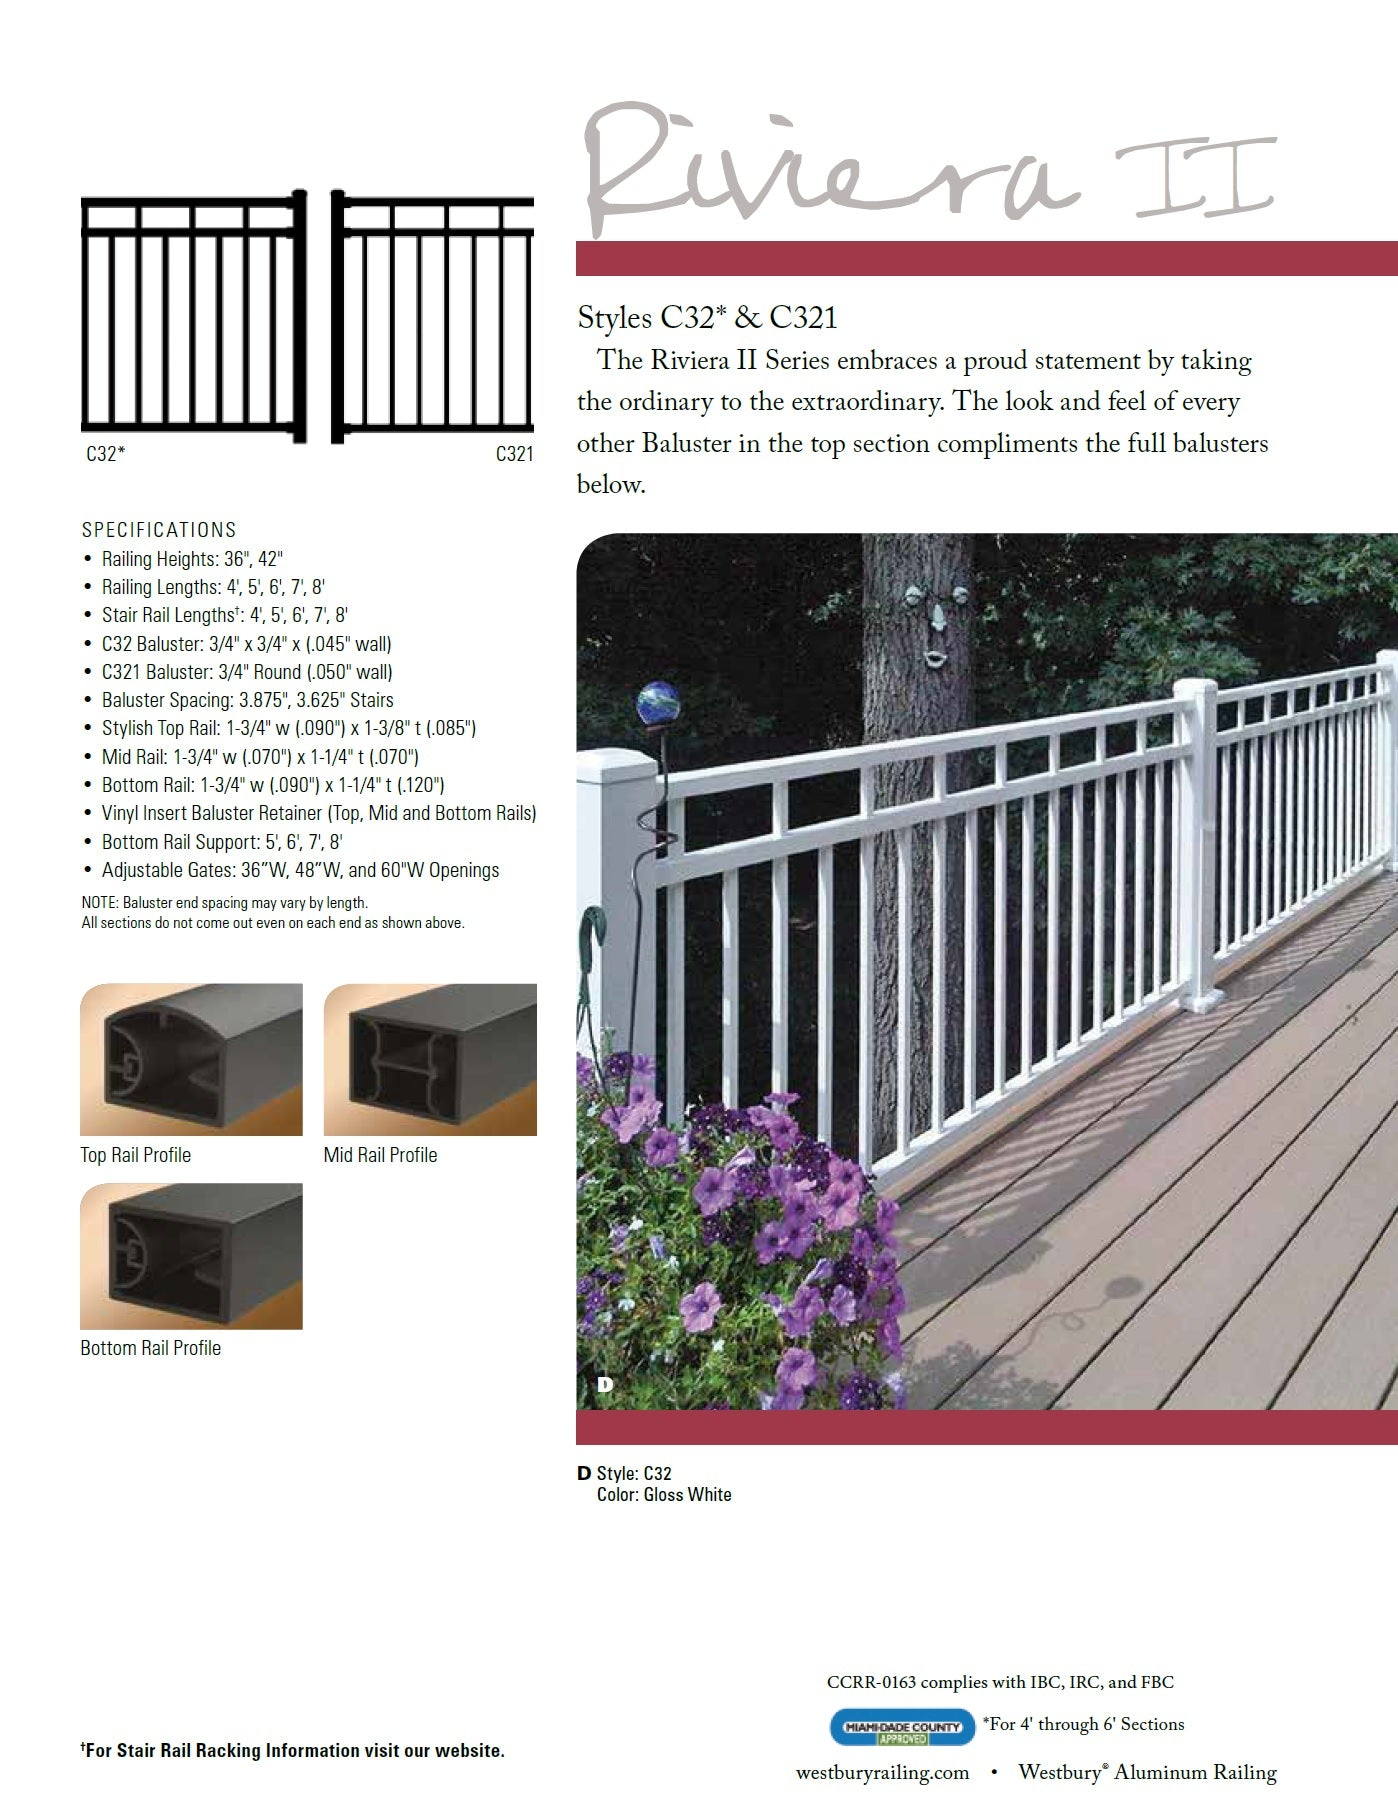 Westbury Riviera 2, Riviera II, C32 and C321 Aluminum Designer Railing, Deck railing high end, fancy deck railing, fancy fencing, top rated handrail